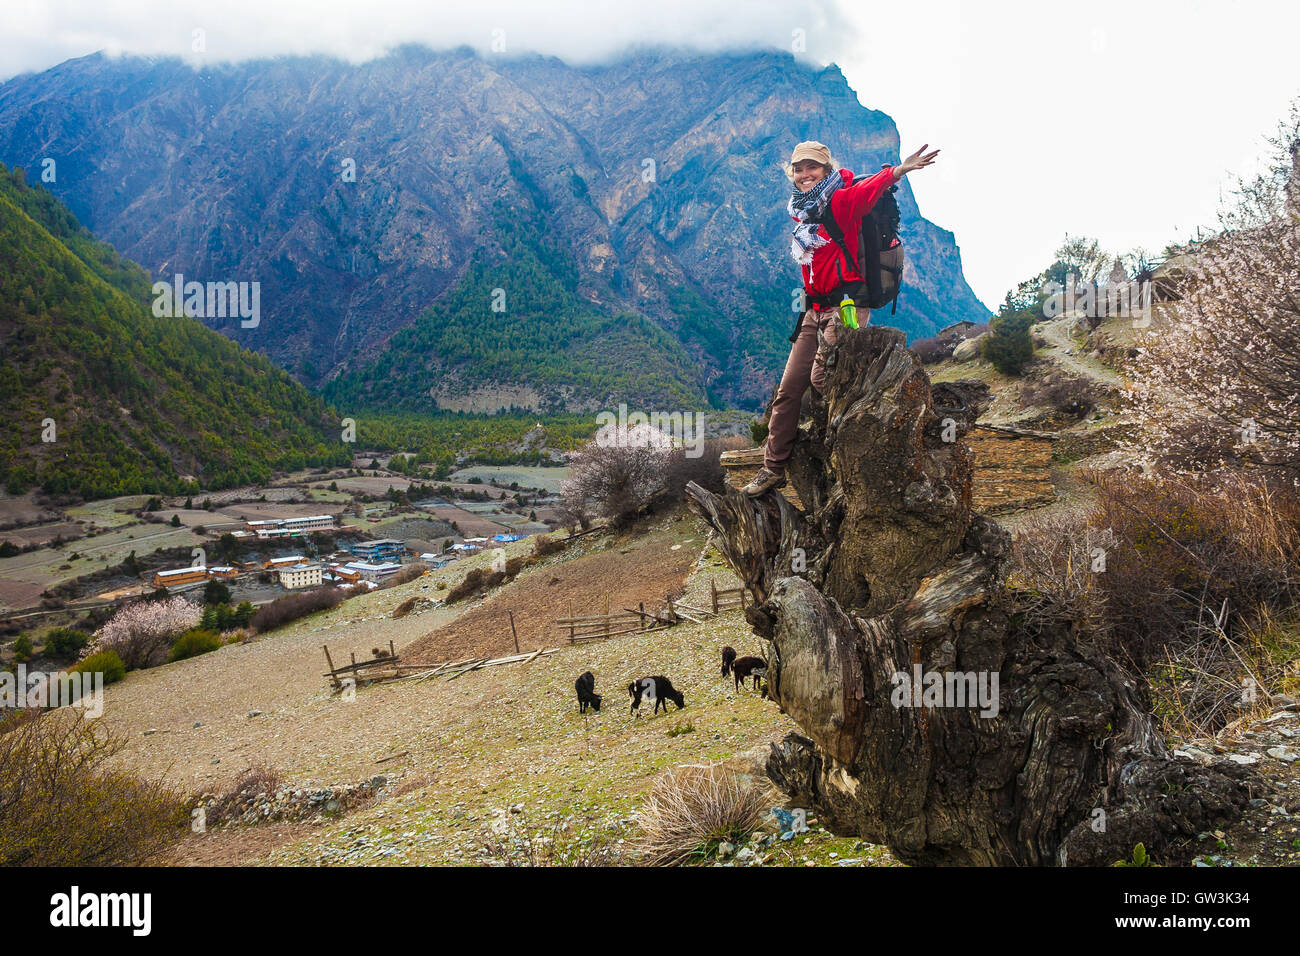 Portrait Young Pretty Girl Wearing Red Jacket Himalays Mountains.Asia Nature Morning Viewpoint.Mountain Trekking,View - Stock Image